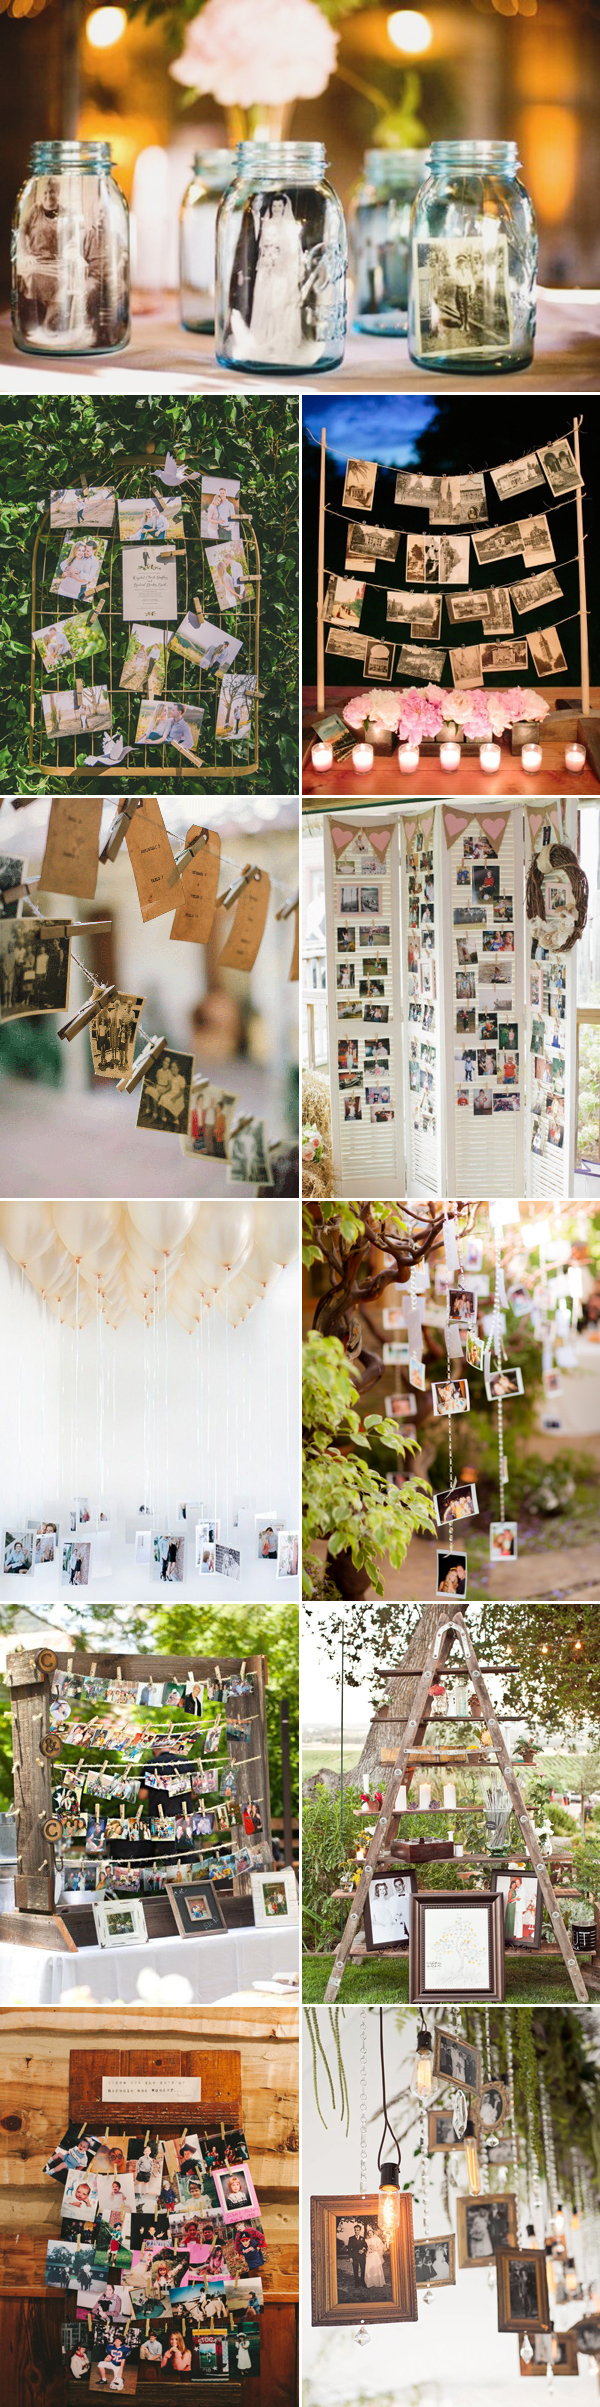 photodisplay01-decor